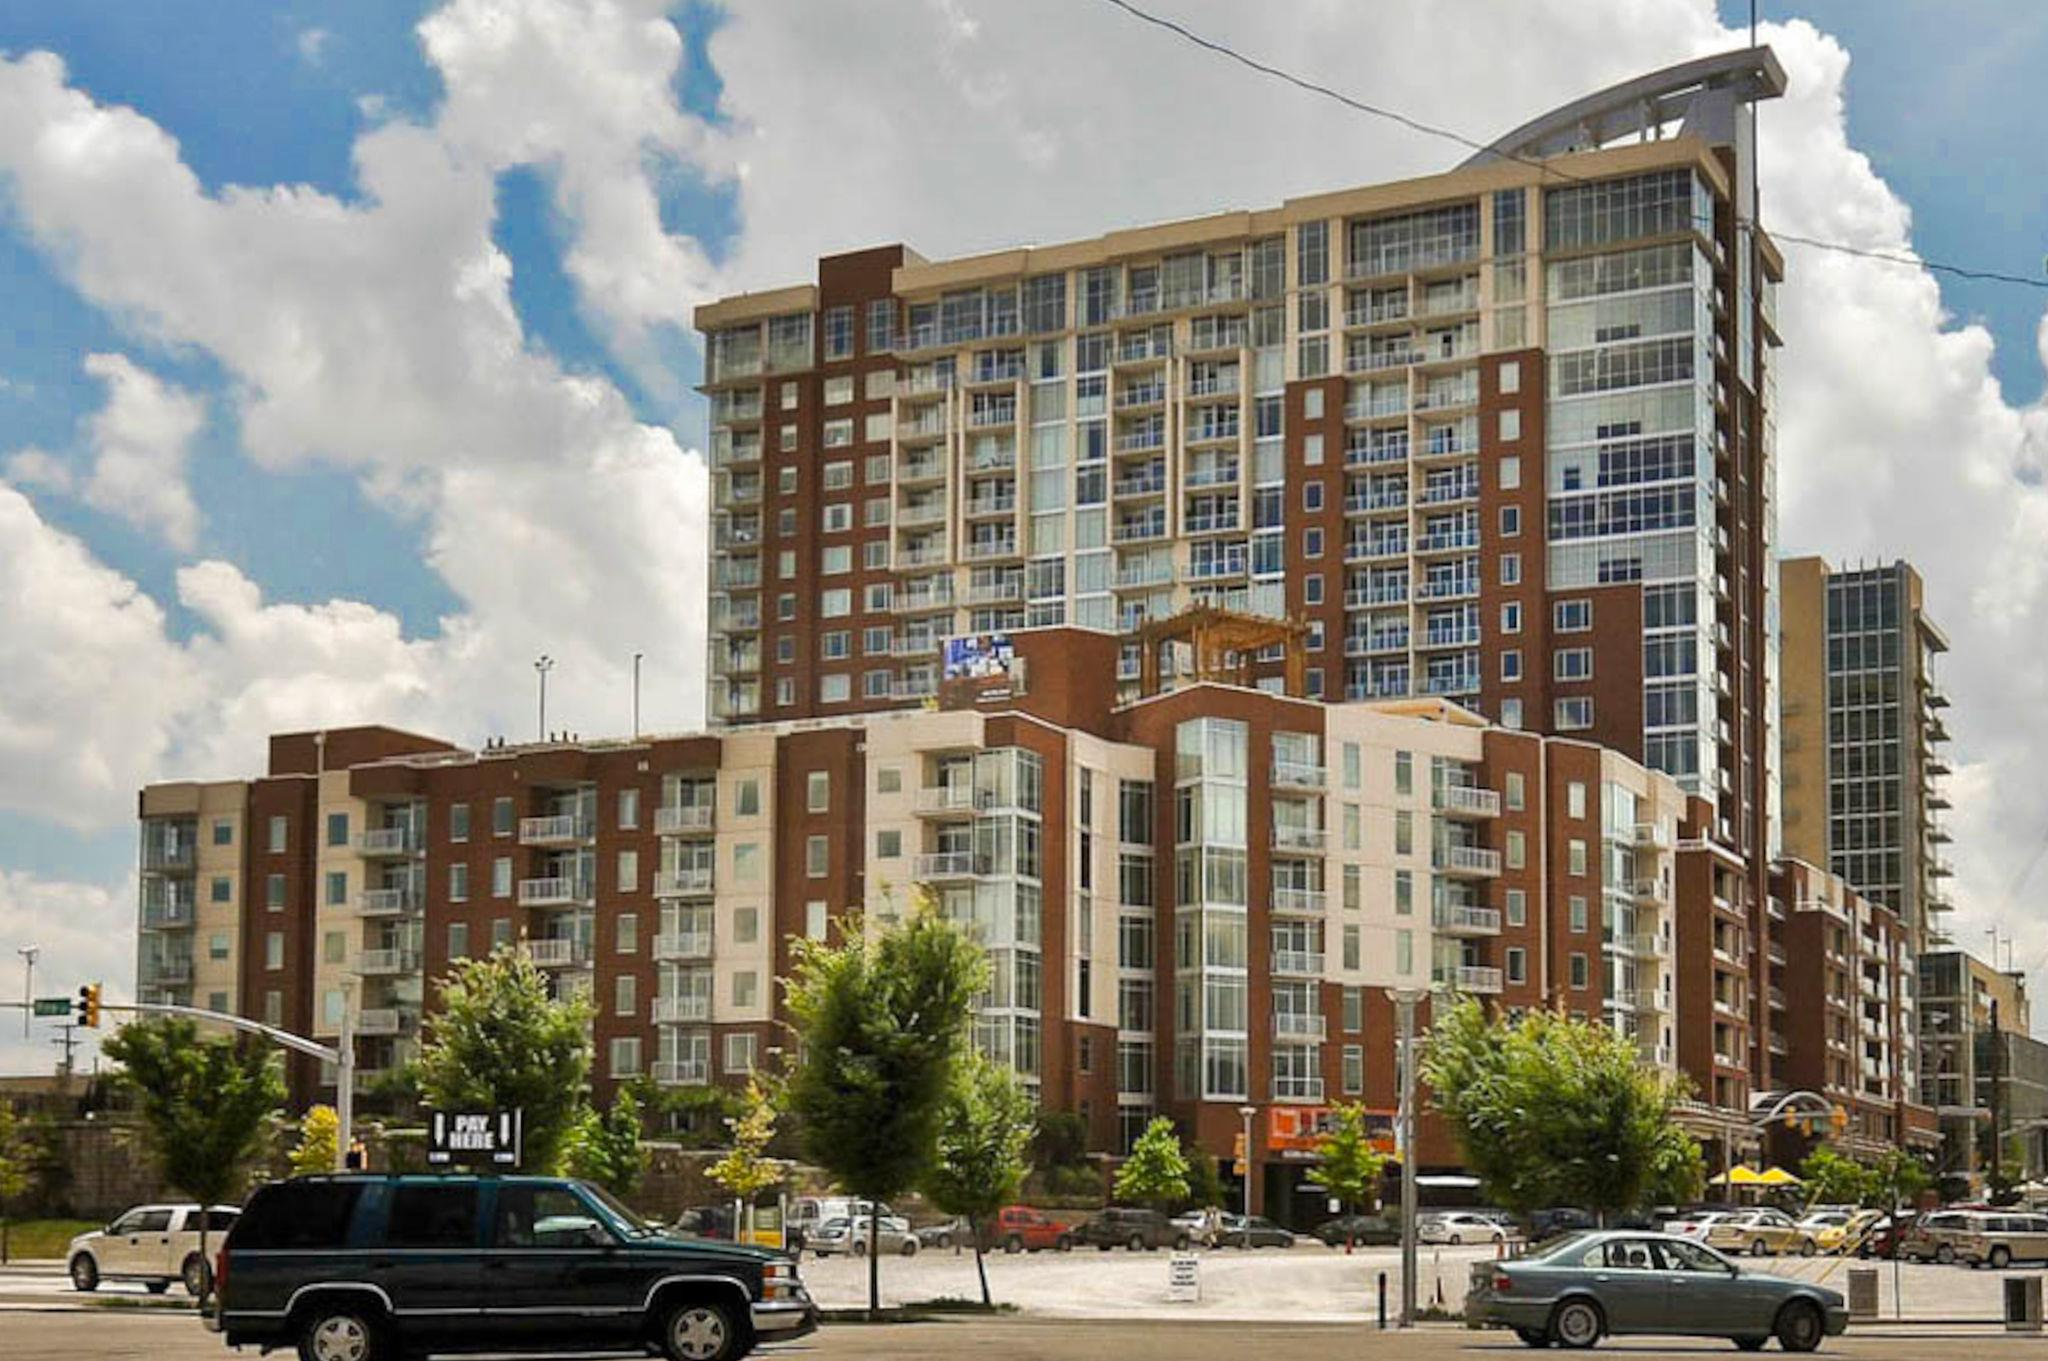 600 12Th Ave S Apt 439, Nashville - Midtown in Davidson County County, TN 37203 Home for Sale